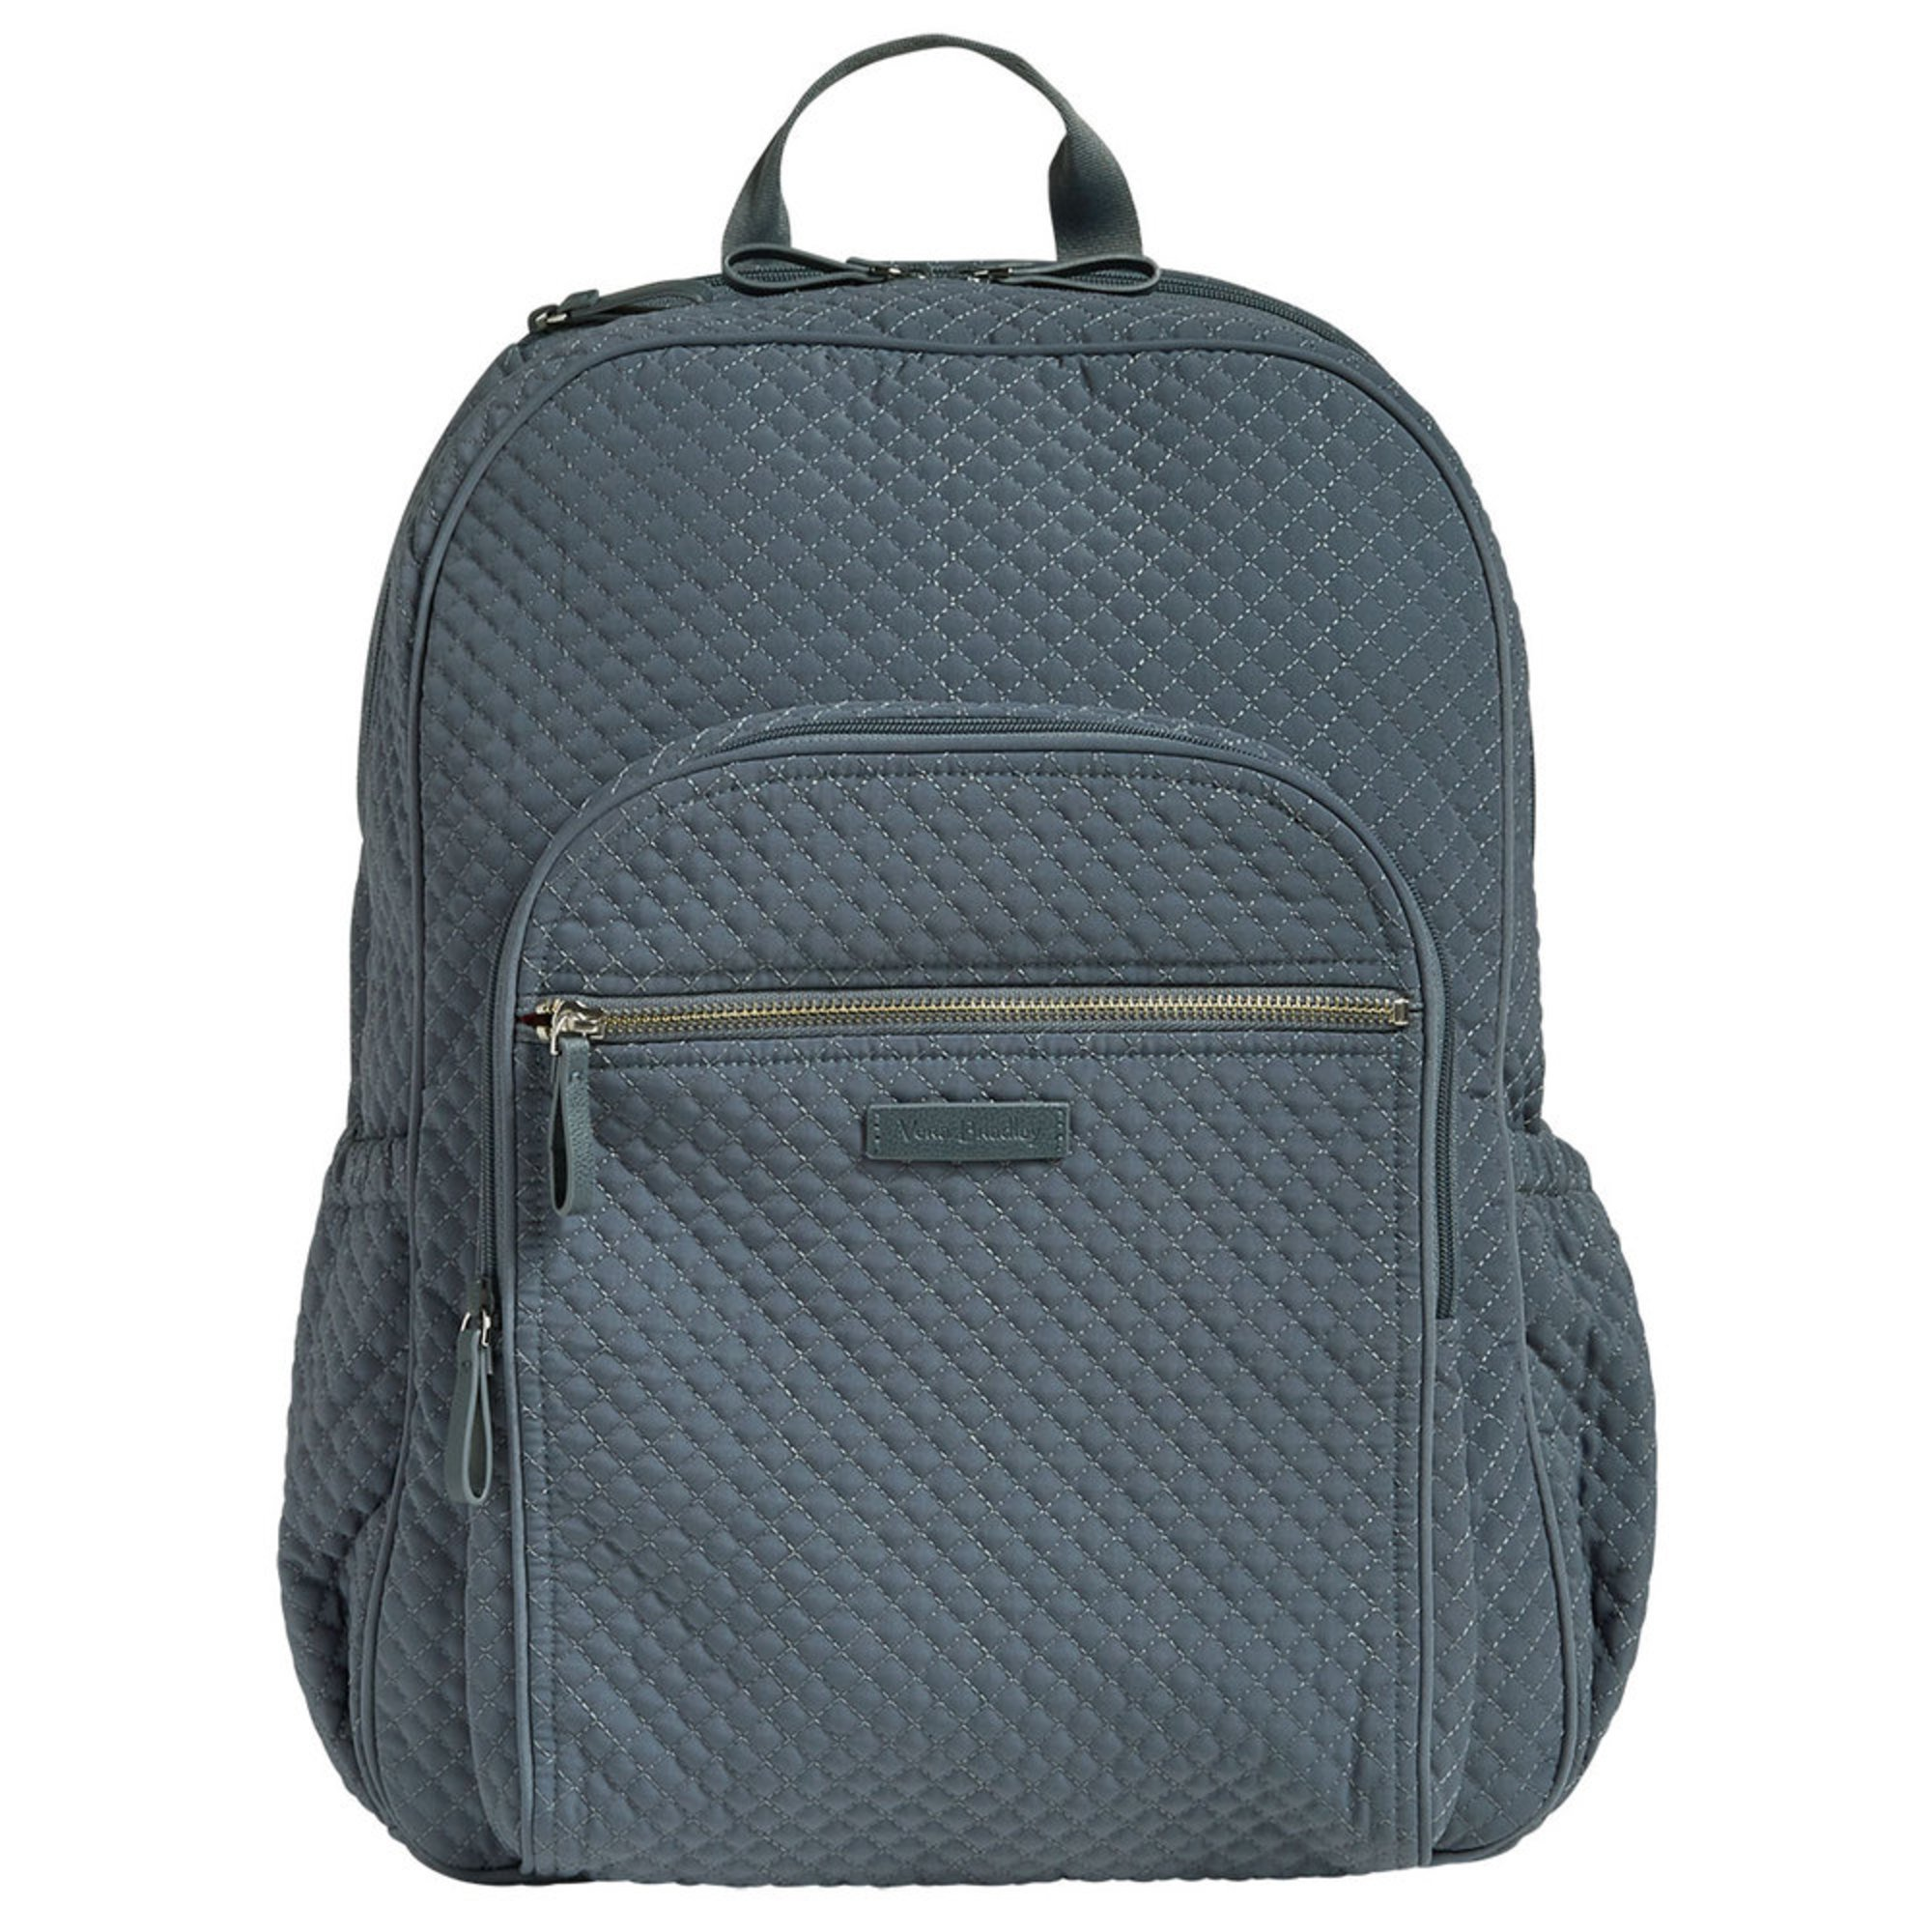 Vera Bradley Iconic Campus Backpack Charcoal